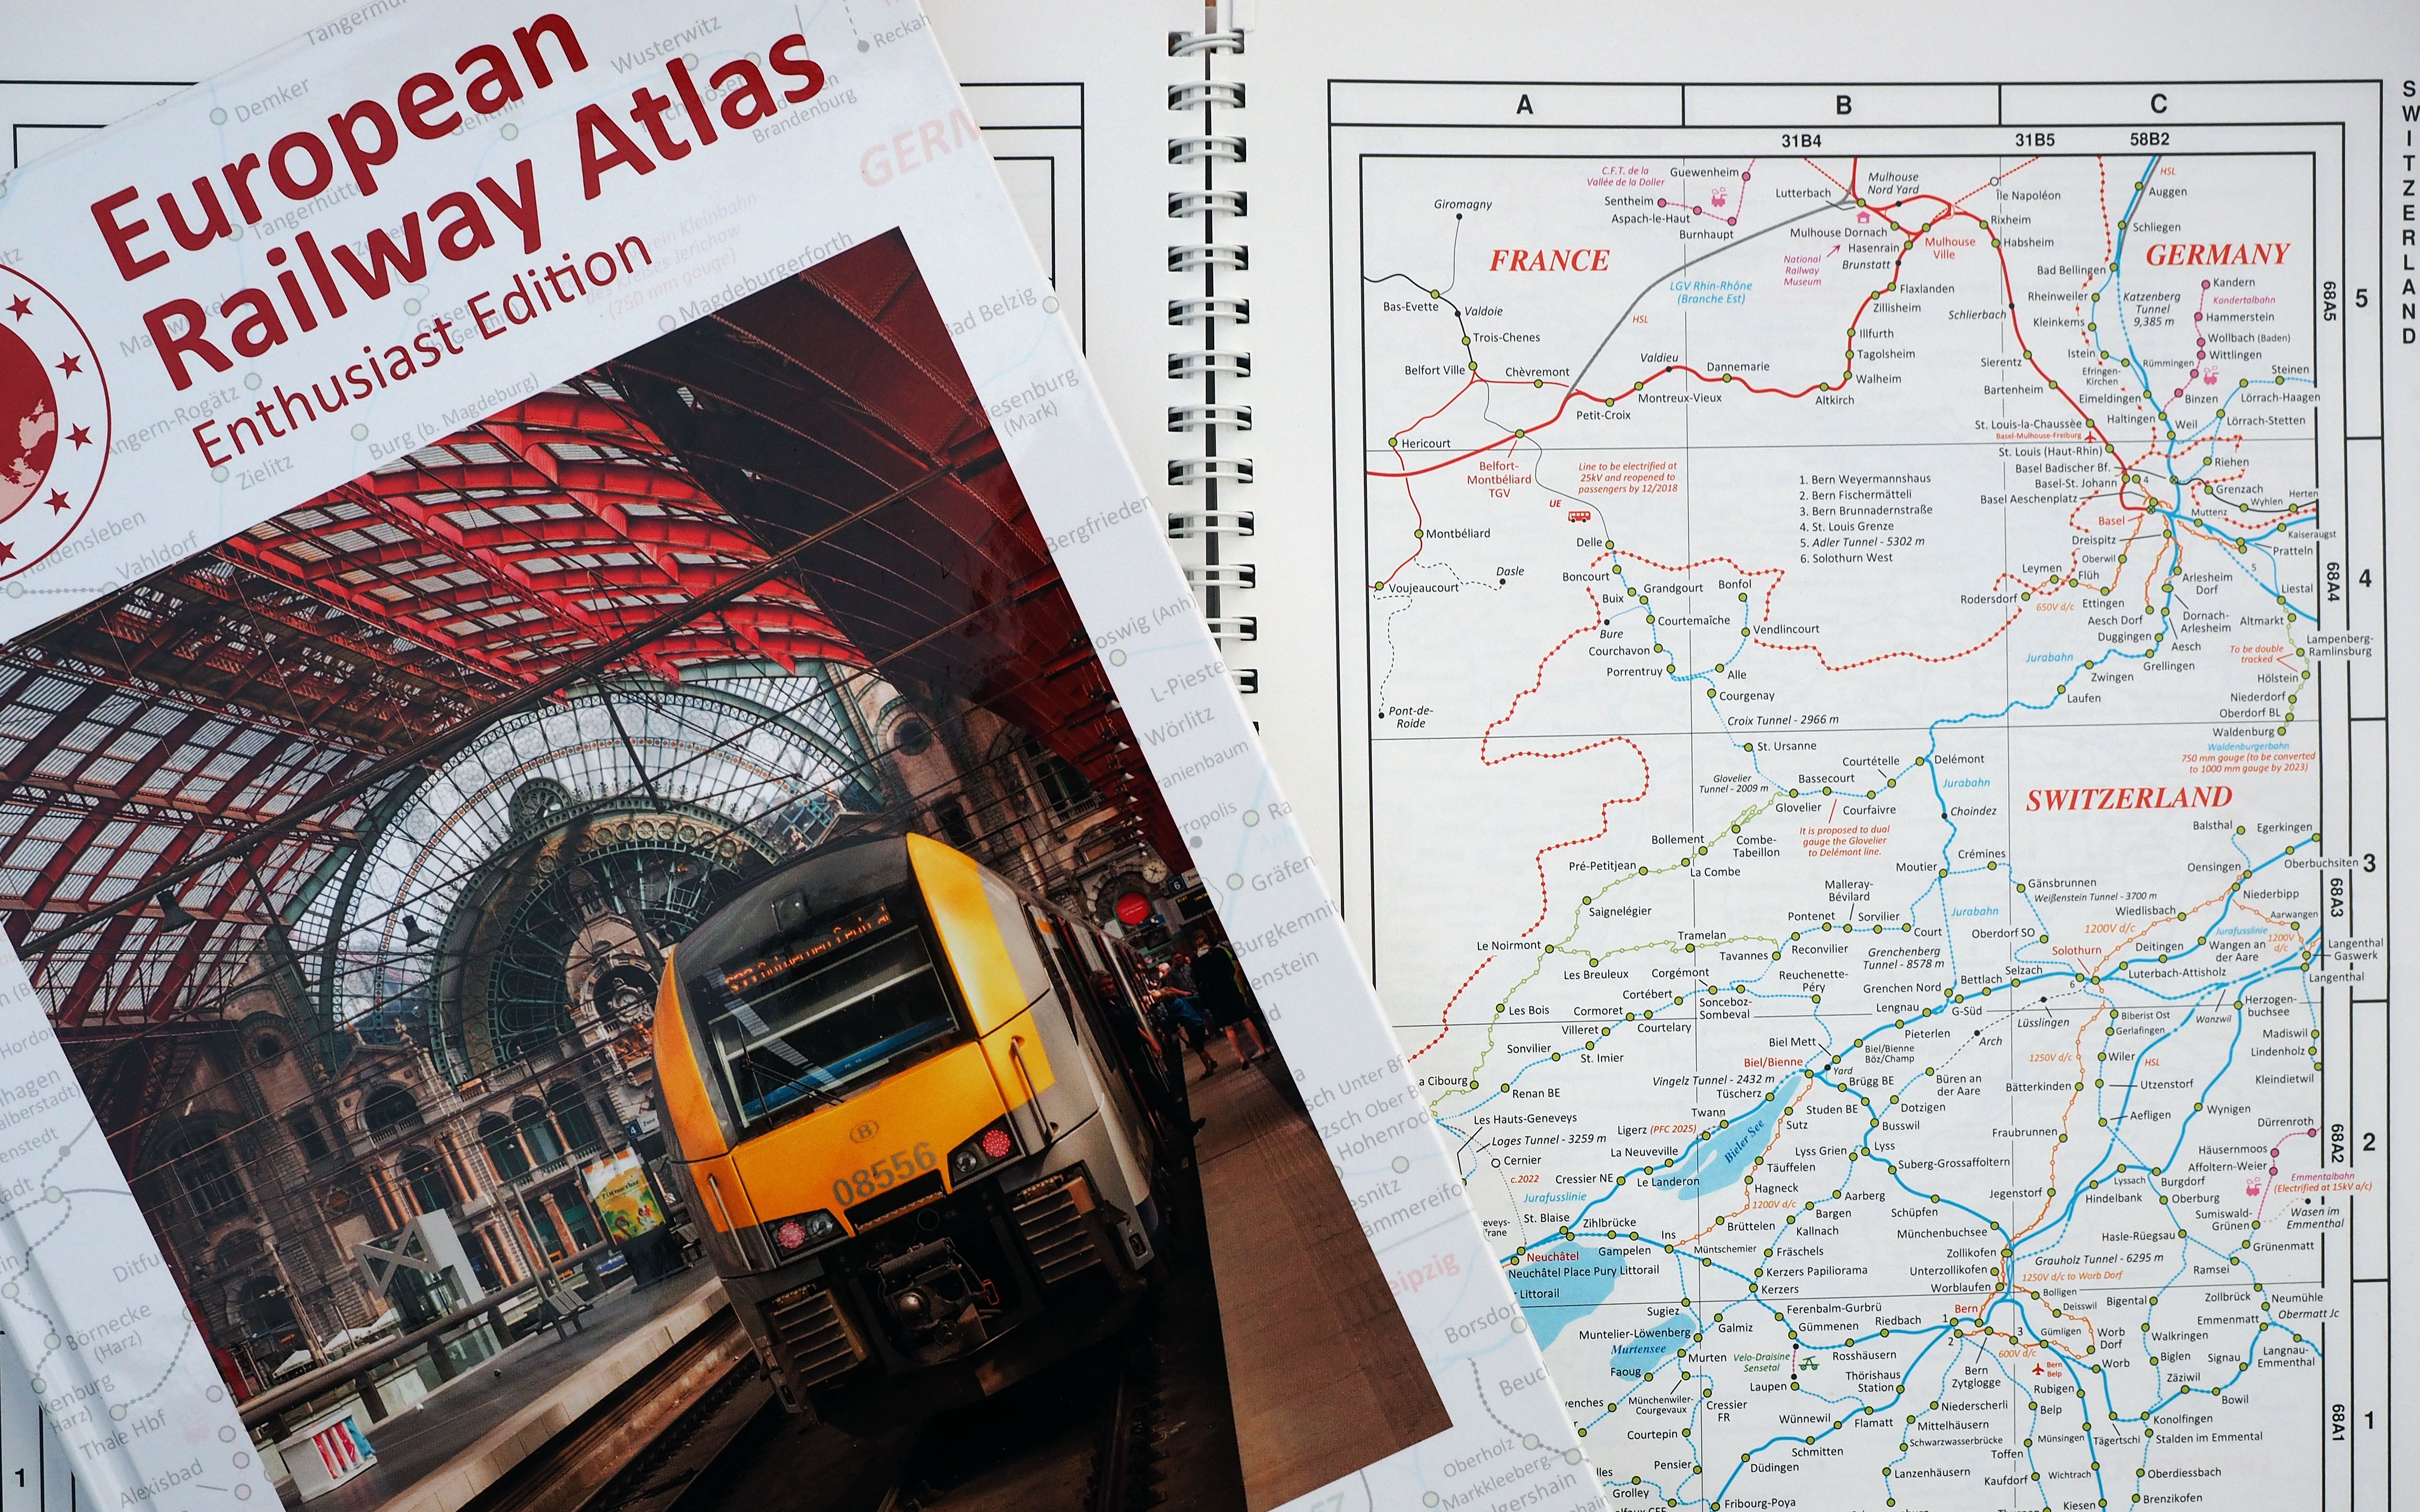 The front cover of the new Enthusiast Edition of the European Railway Atlas. In the background is a sample of the old 2017 edition which was cardback and wiro-bound. The new book is hardback.